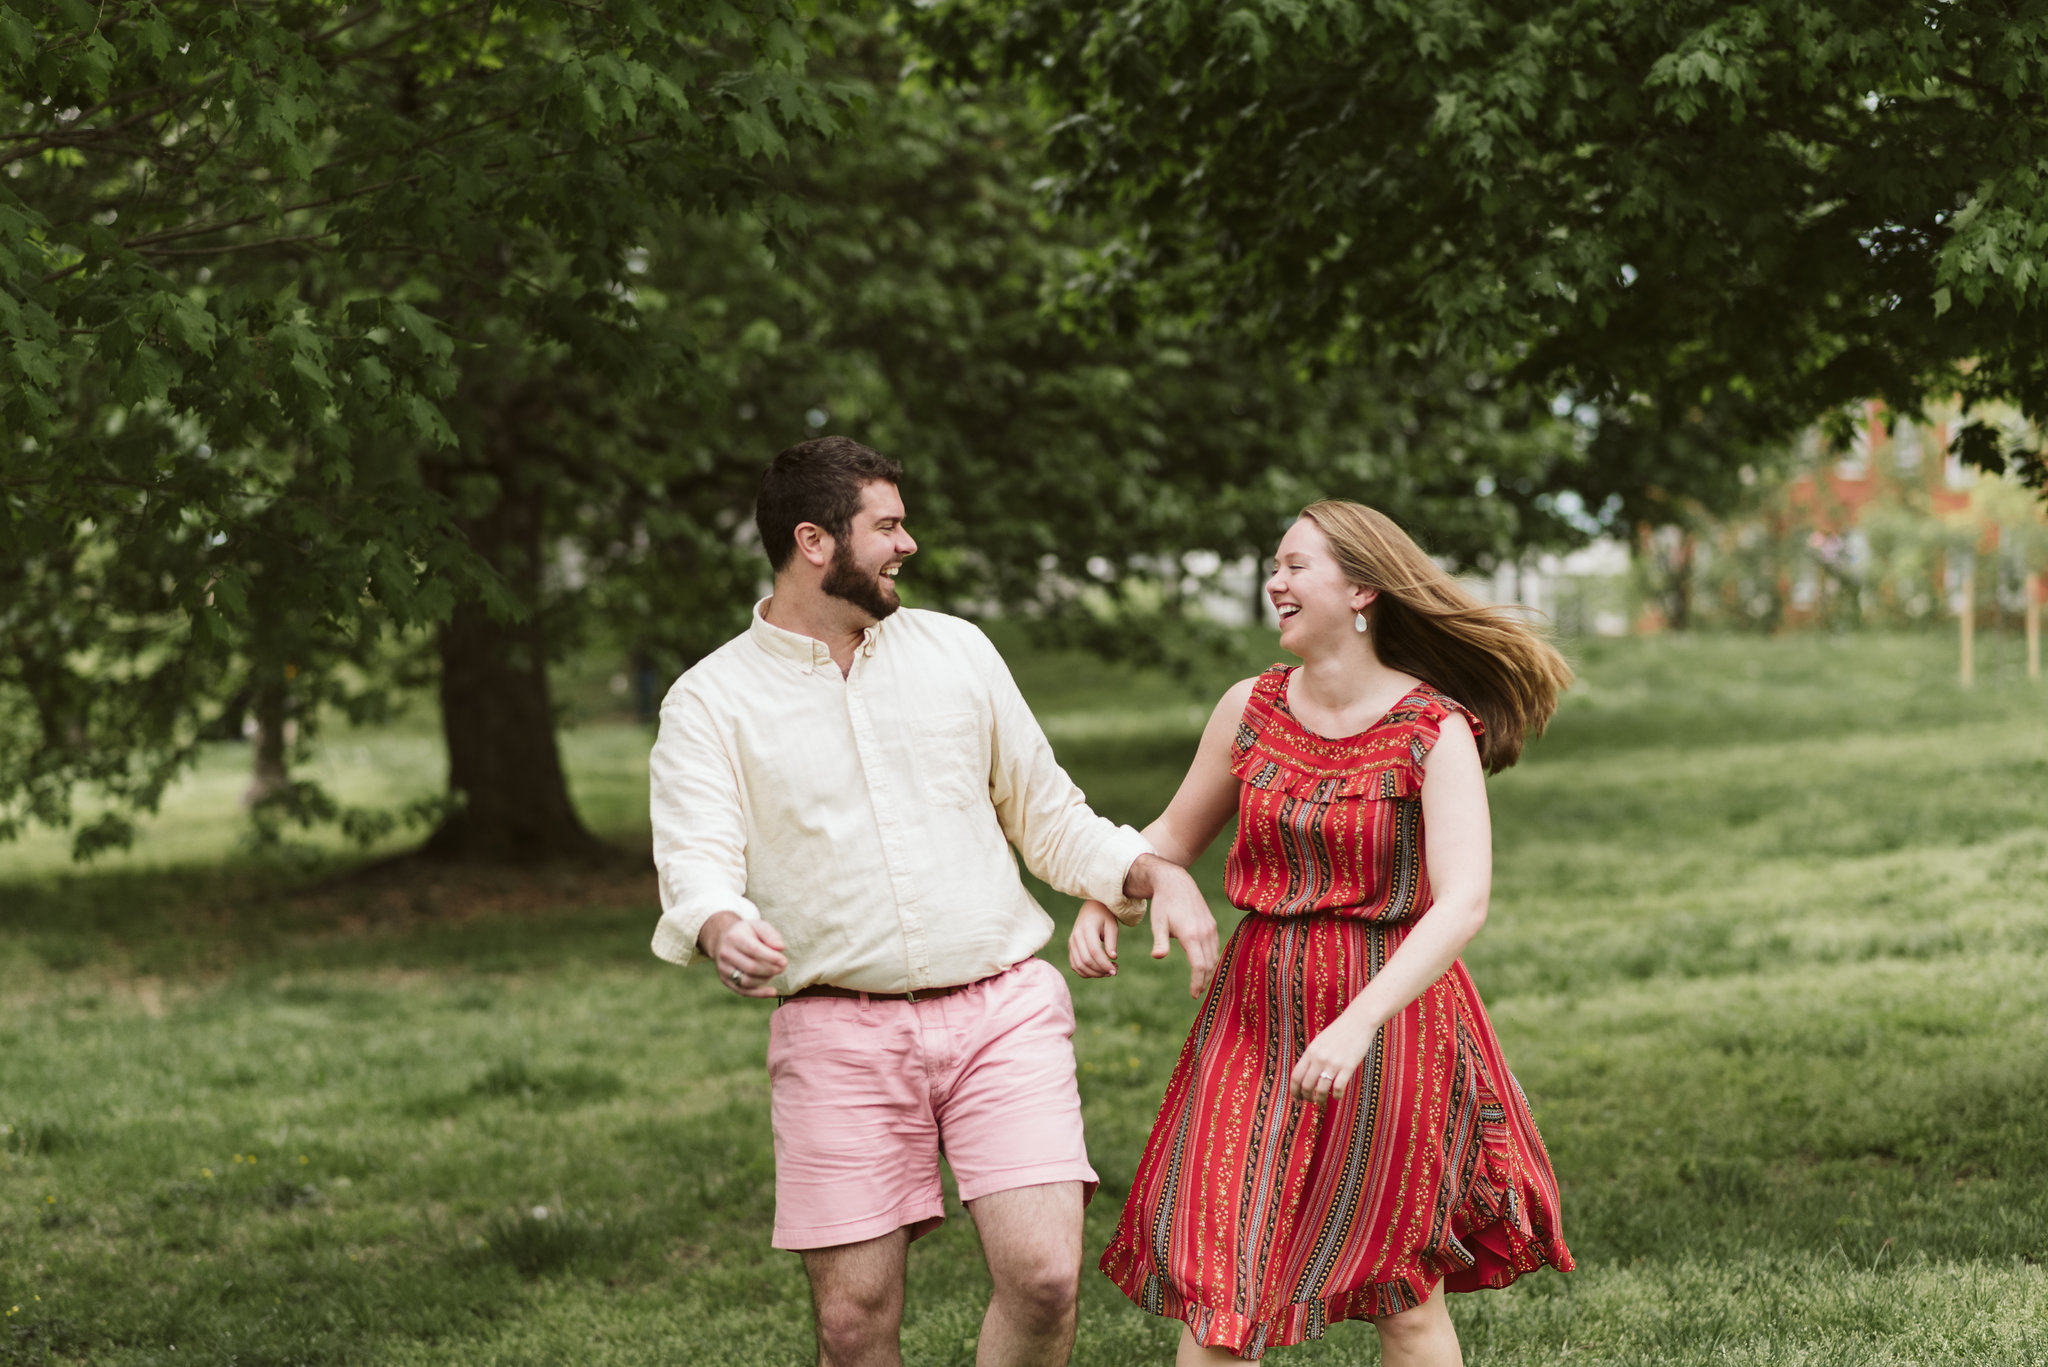 Engagement Photos, Patterson Park, Baltimore, Maryland Wedding Photographer, Casual, Fun, Nature, Bride and Groom Having Fun in a Park, Sweet Candid Photo